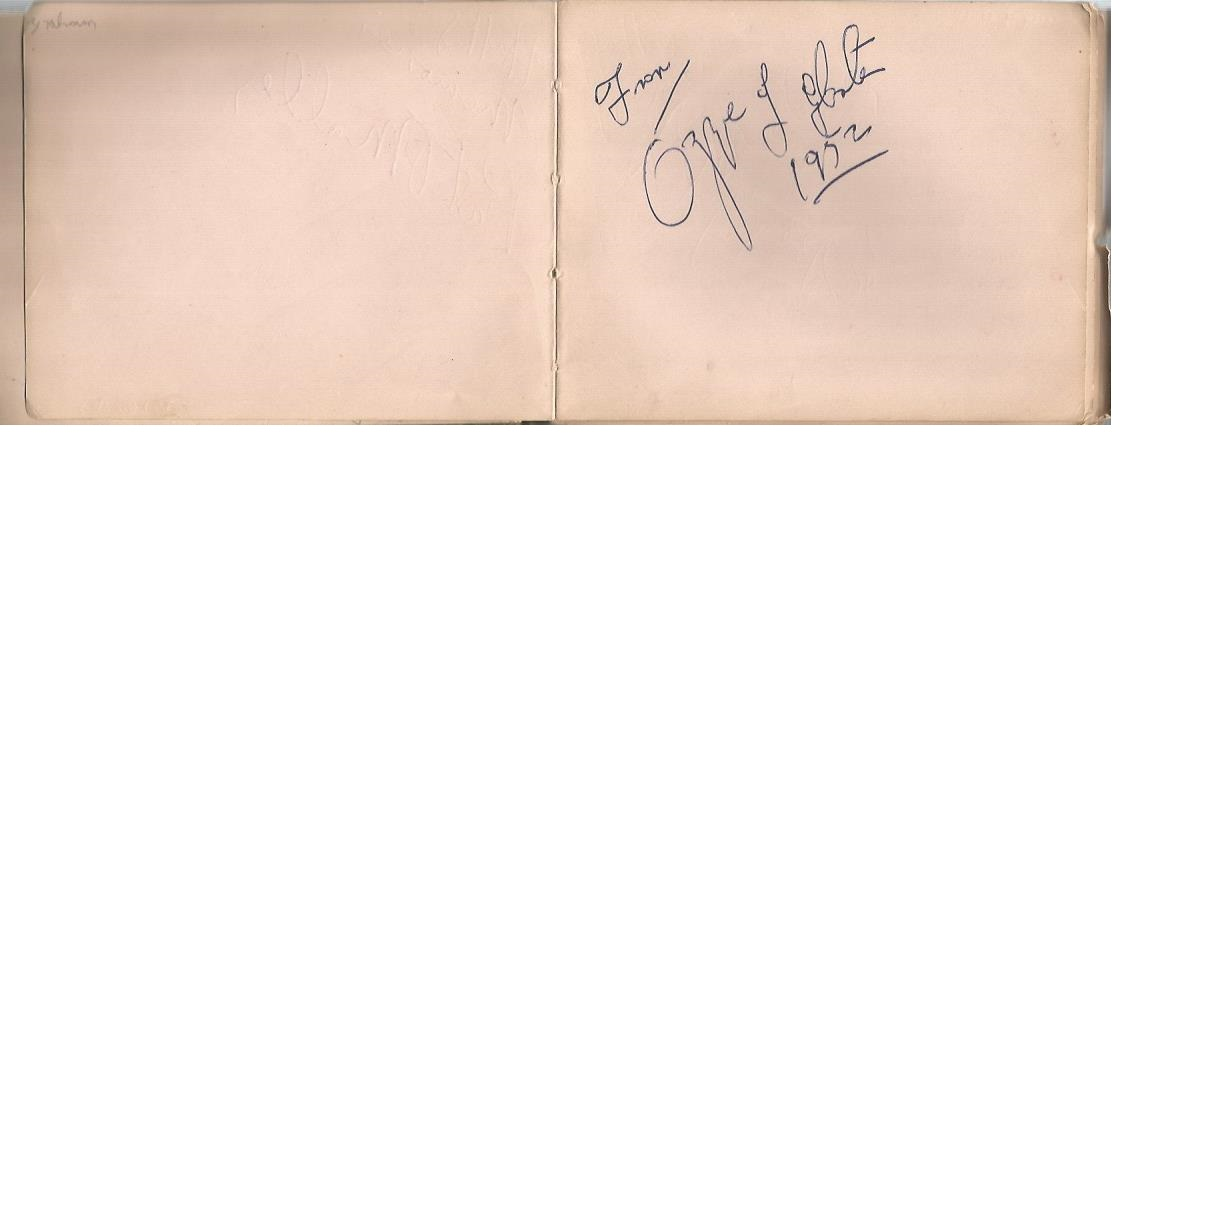 Lot 8 - Small vintage autograph book with 30+ signatures. Amongst the names are Syd Seymour, Pat O'Malley,